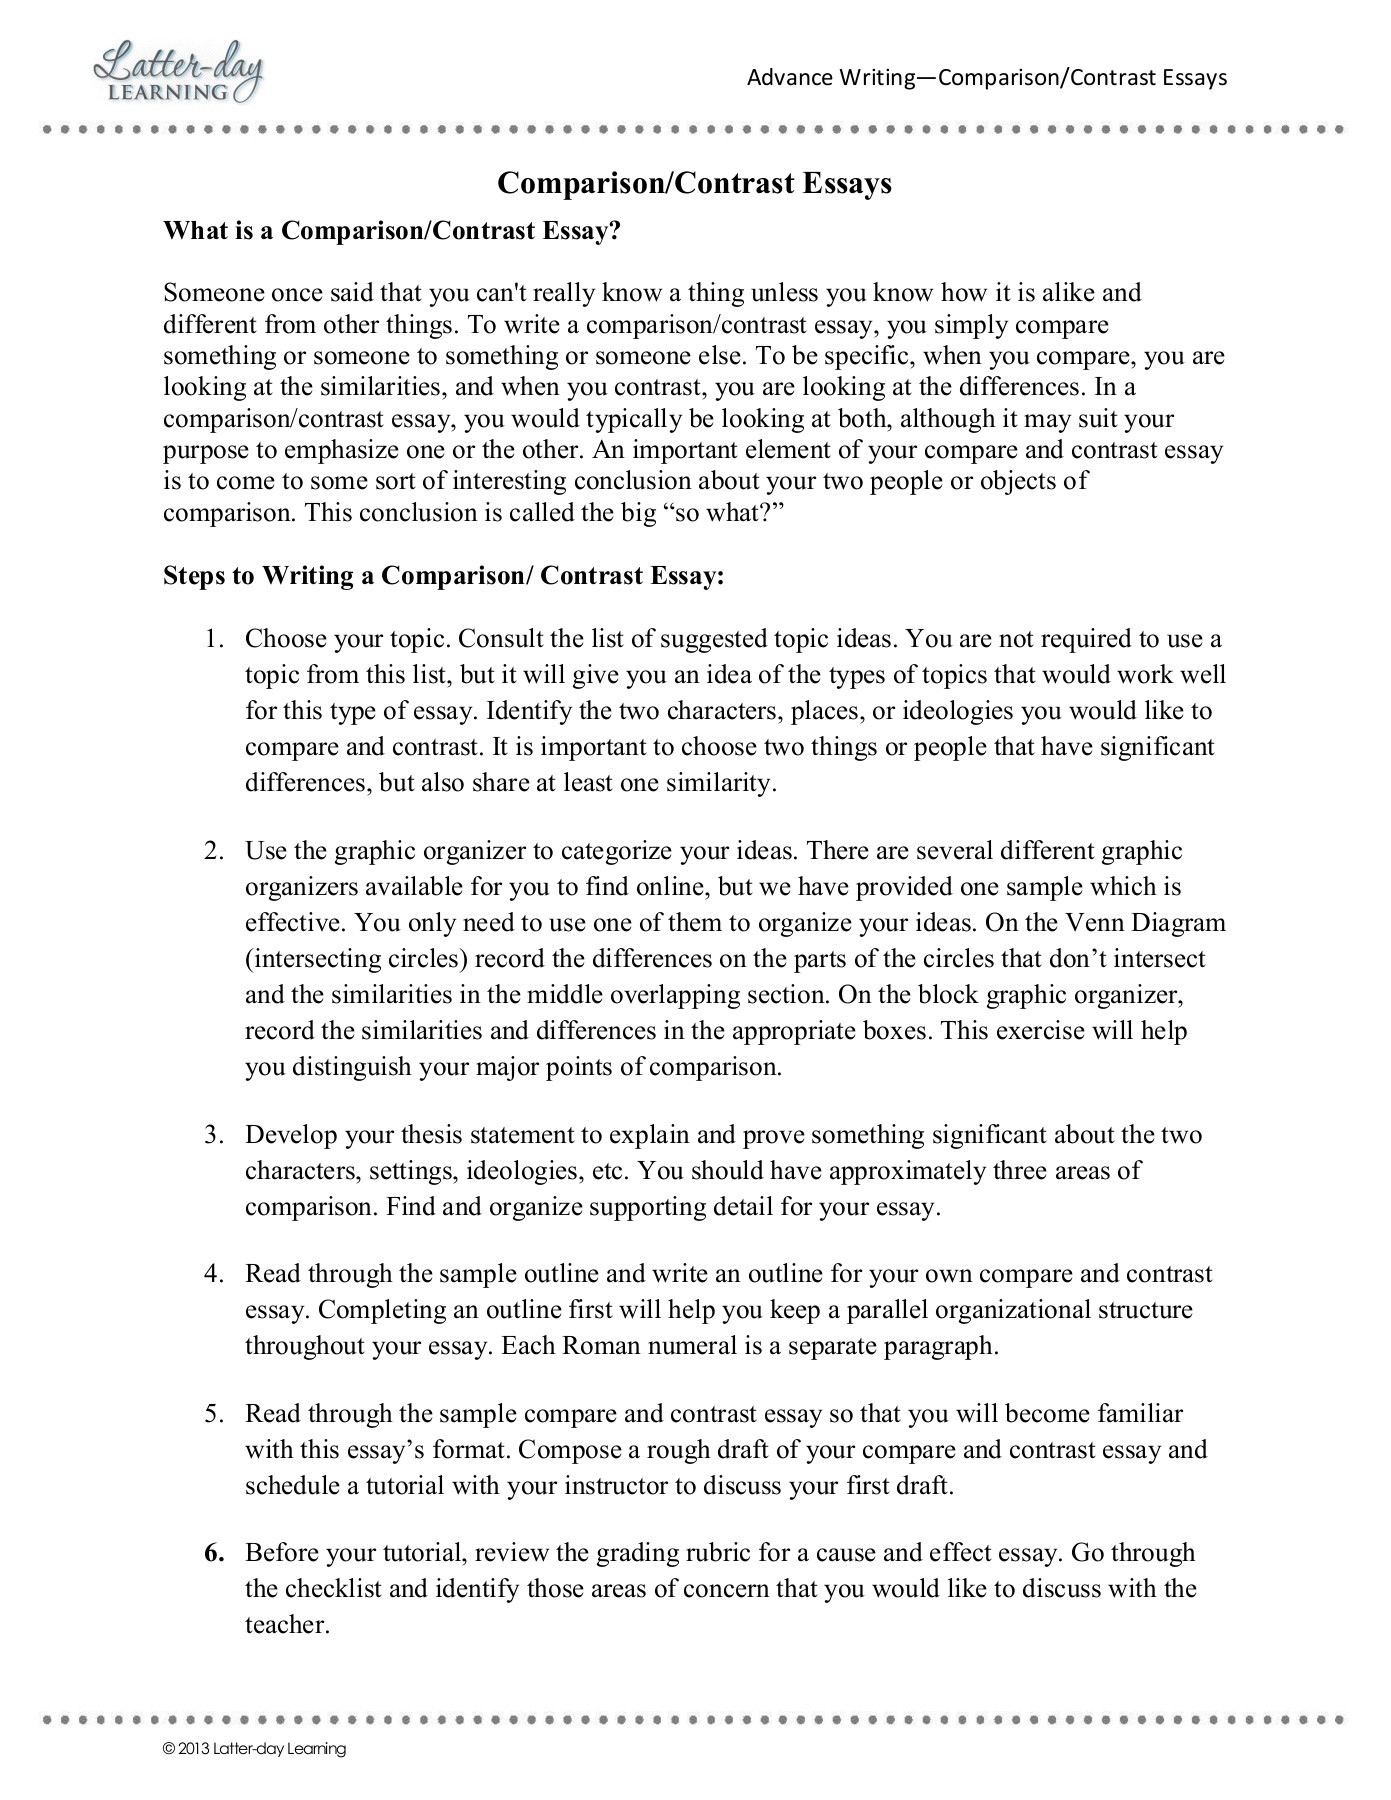 016 Compare And Contrast Essays Essay Awful Free Examples For College Topics Middle School Full